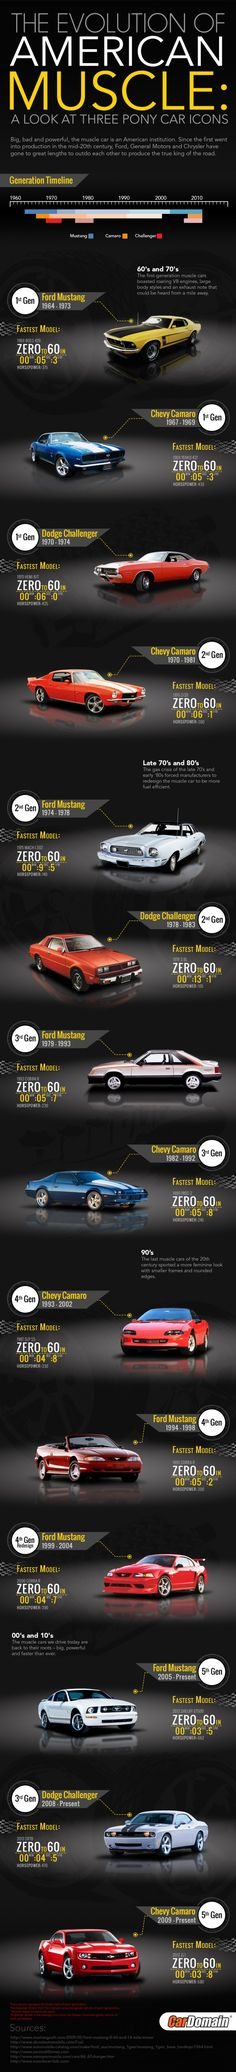 Evolution of the American Muscle Car